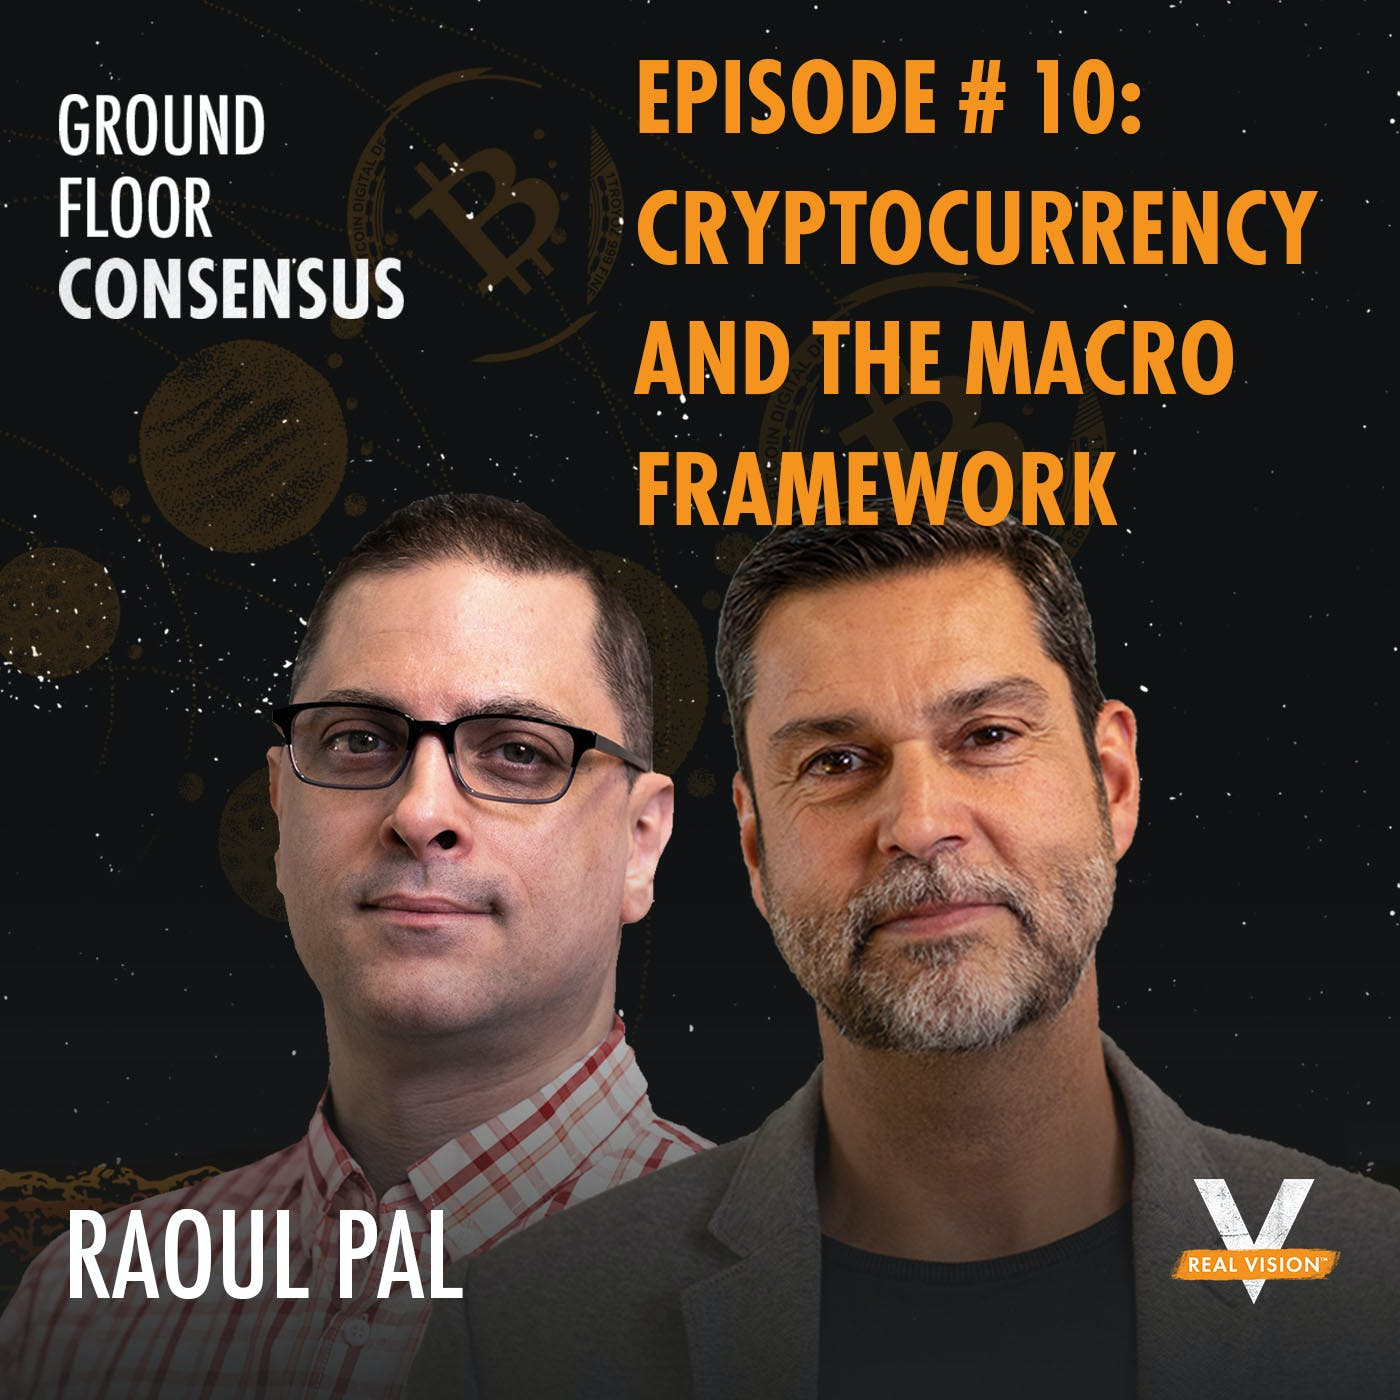 GFC010: Raoul Pal - Cryptocurrency and the Macro Framework